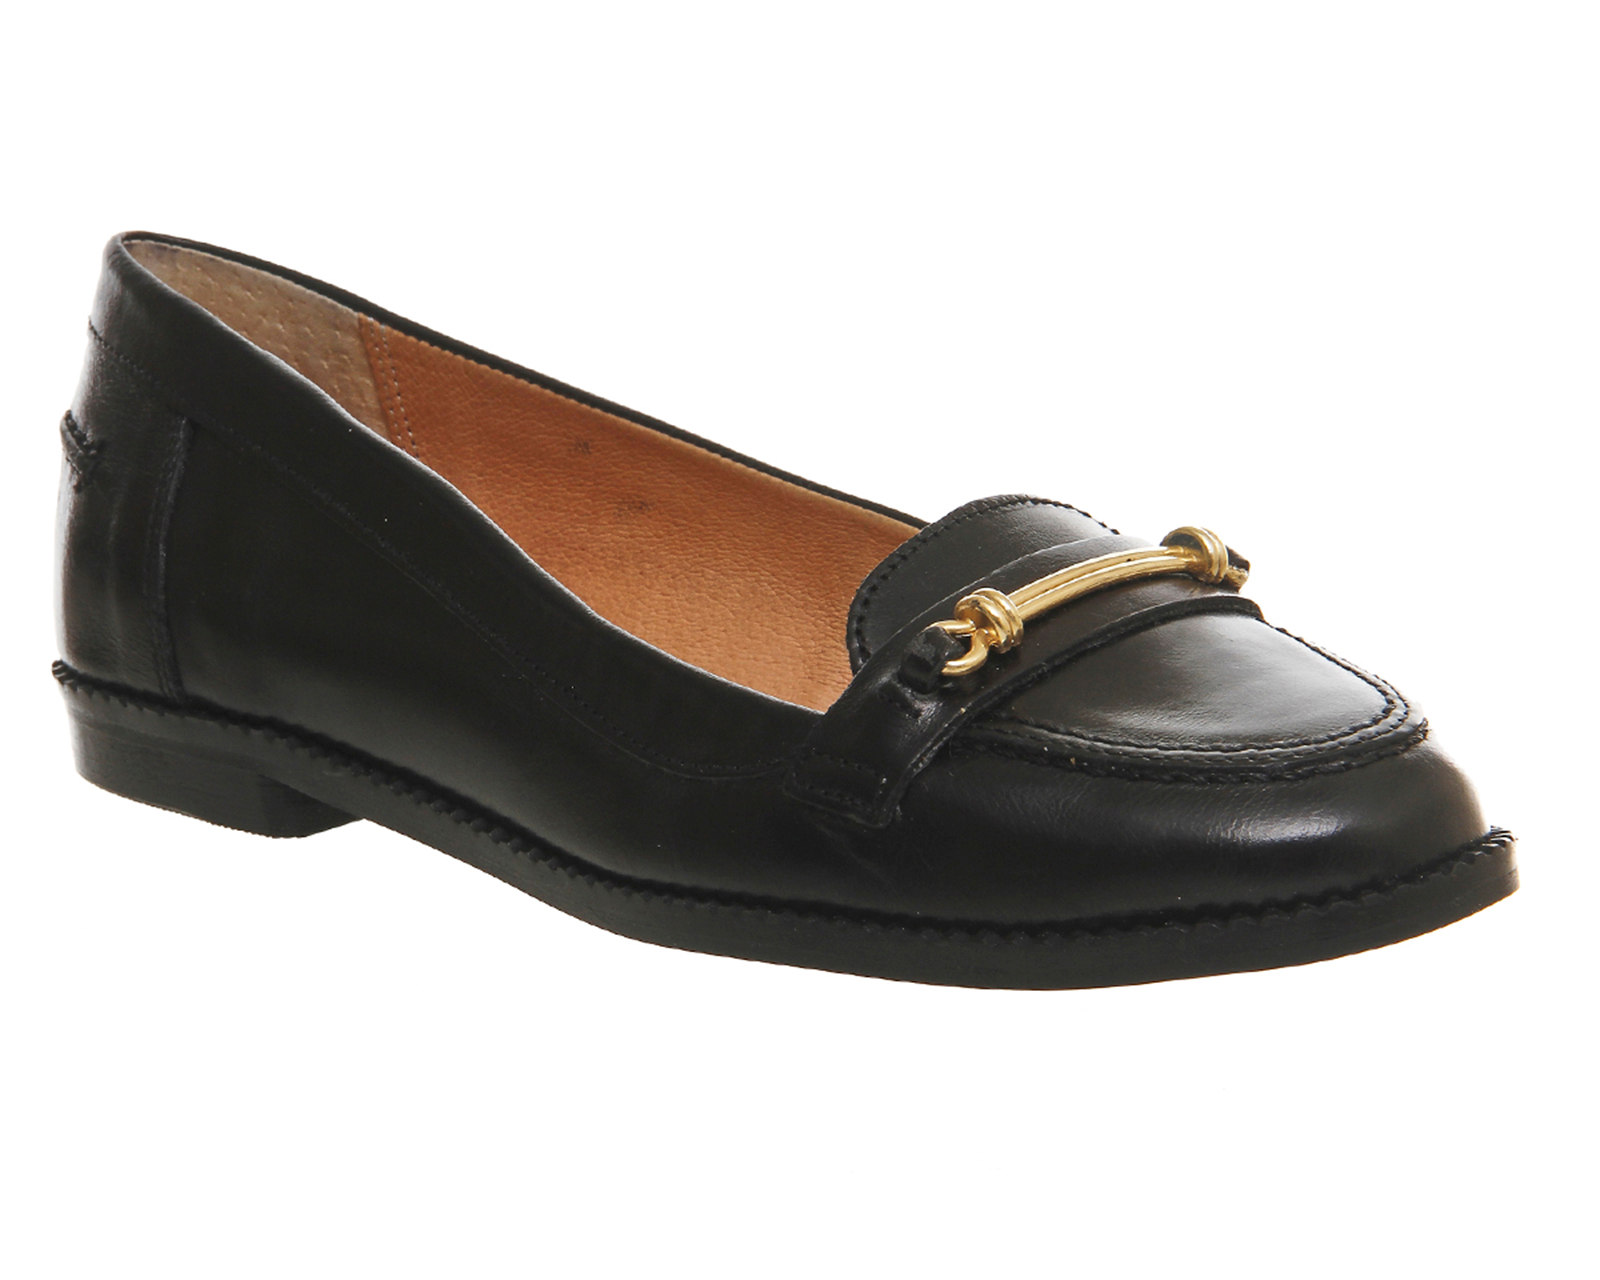 Find great deals on eBay for womens black leather loafers. Shop with confidence.